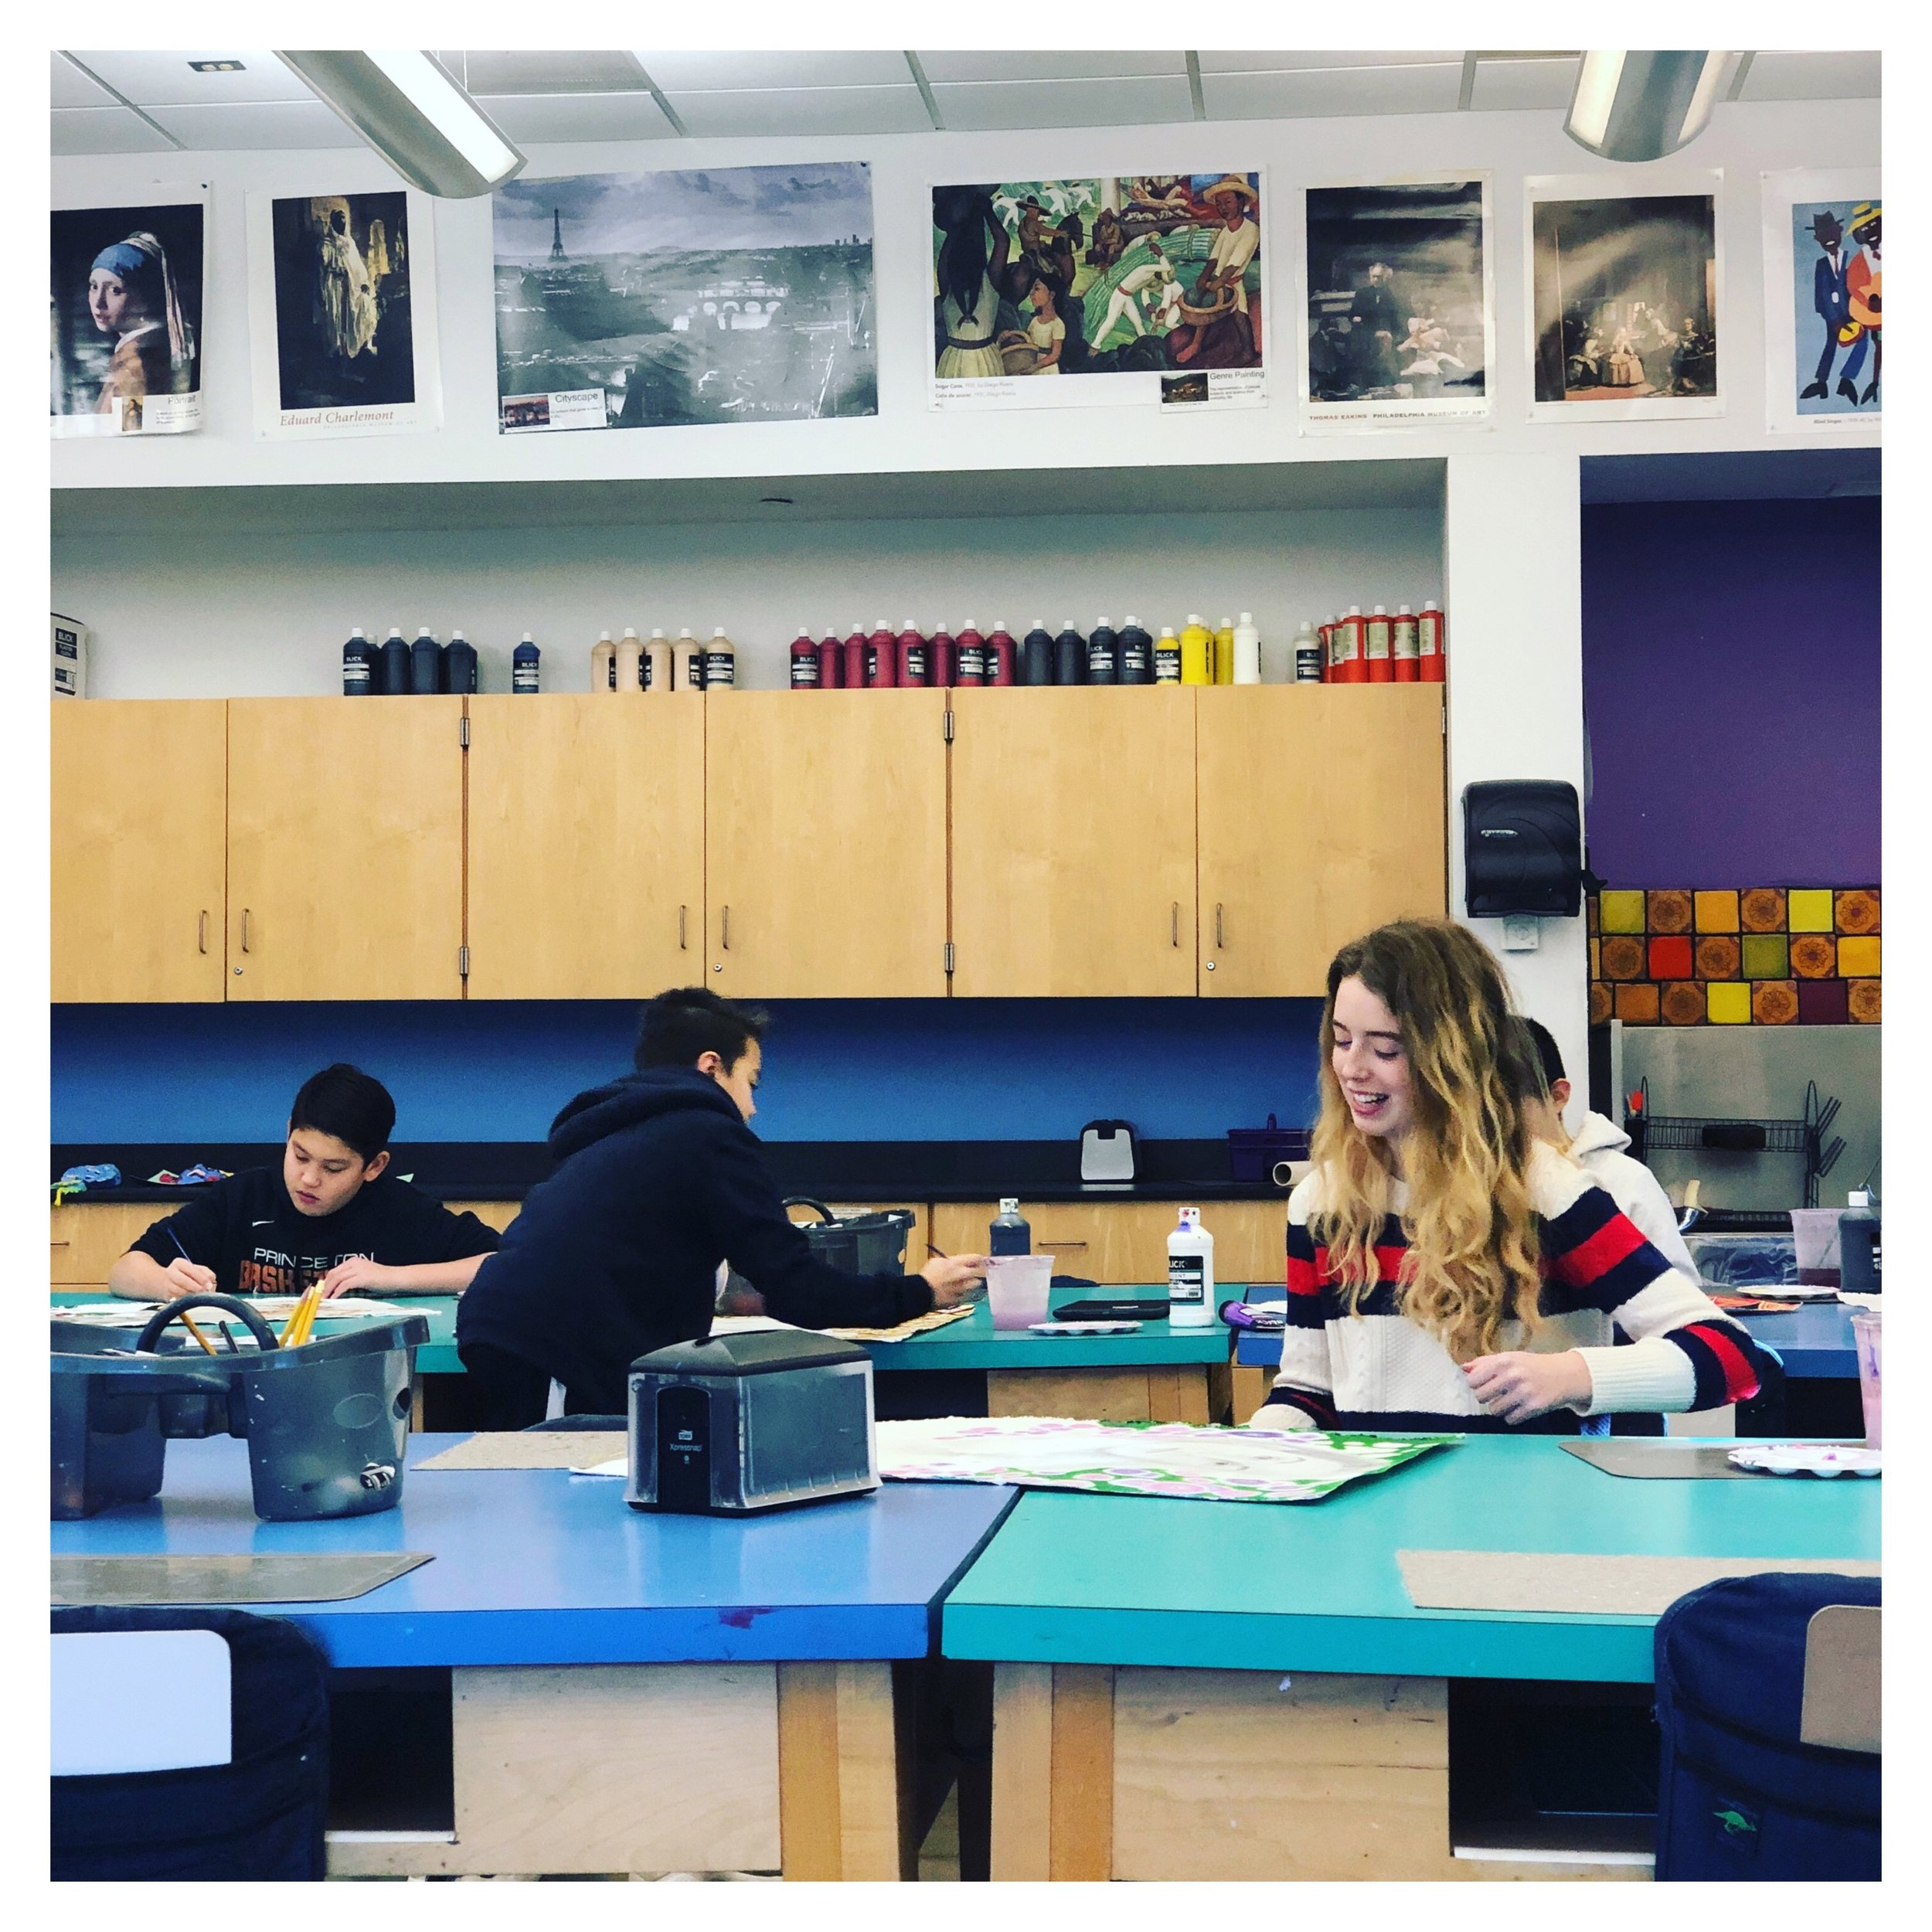 I started a new job this fall and it's been a whirlwind…in all the good ways. I can explain all of that later.    I wanted to share a picture of my 8th grade drawing class. For context, I have been working with this small group of 8th graders since September on their portrait project. I am lucky enough to call them my advisees as well. They are some of the kindest, funniest, and genuine group of kids I have ever met.    So for the new year, here's us, listening to Reed's 'Sleepy Time' playlist. I don't know how she sleeps to Journey and all the 80's hits…lol.